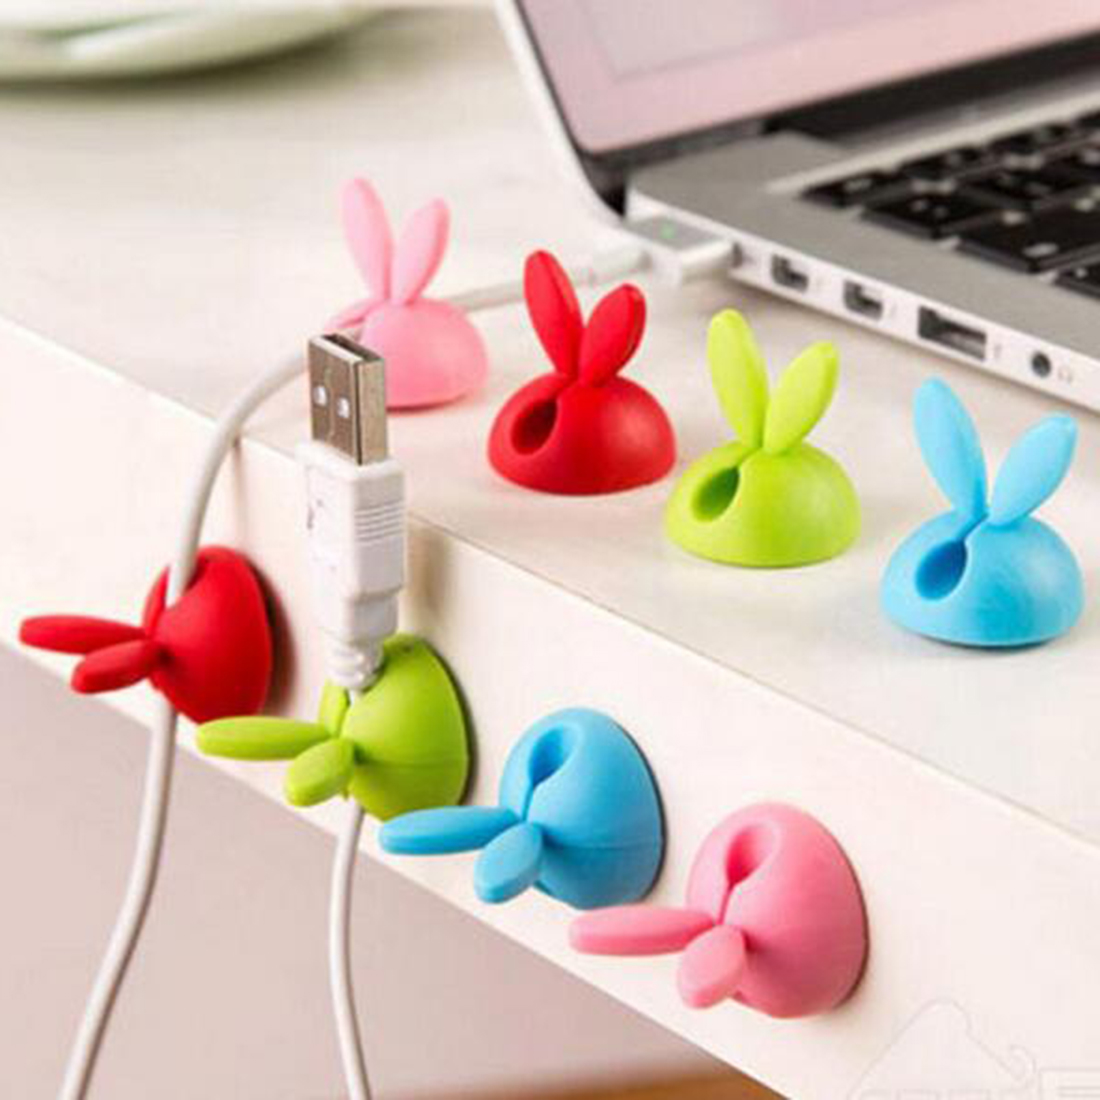 Consumer Electronics Cable Winder Faithful Marsnaska 4pcs Bunny Ear Rabbit Cable Clips Cord Ties Holder Cable Fastener Desk Tidy Organiser Wire Cord Usb Charger Holder Relieving Rheumatism